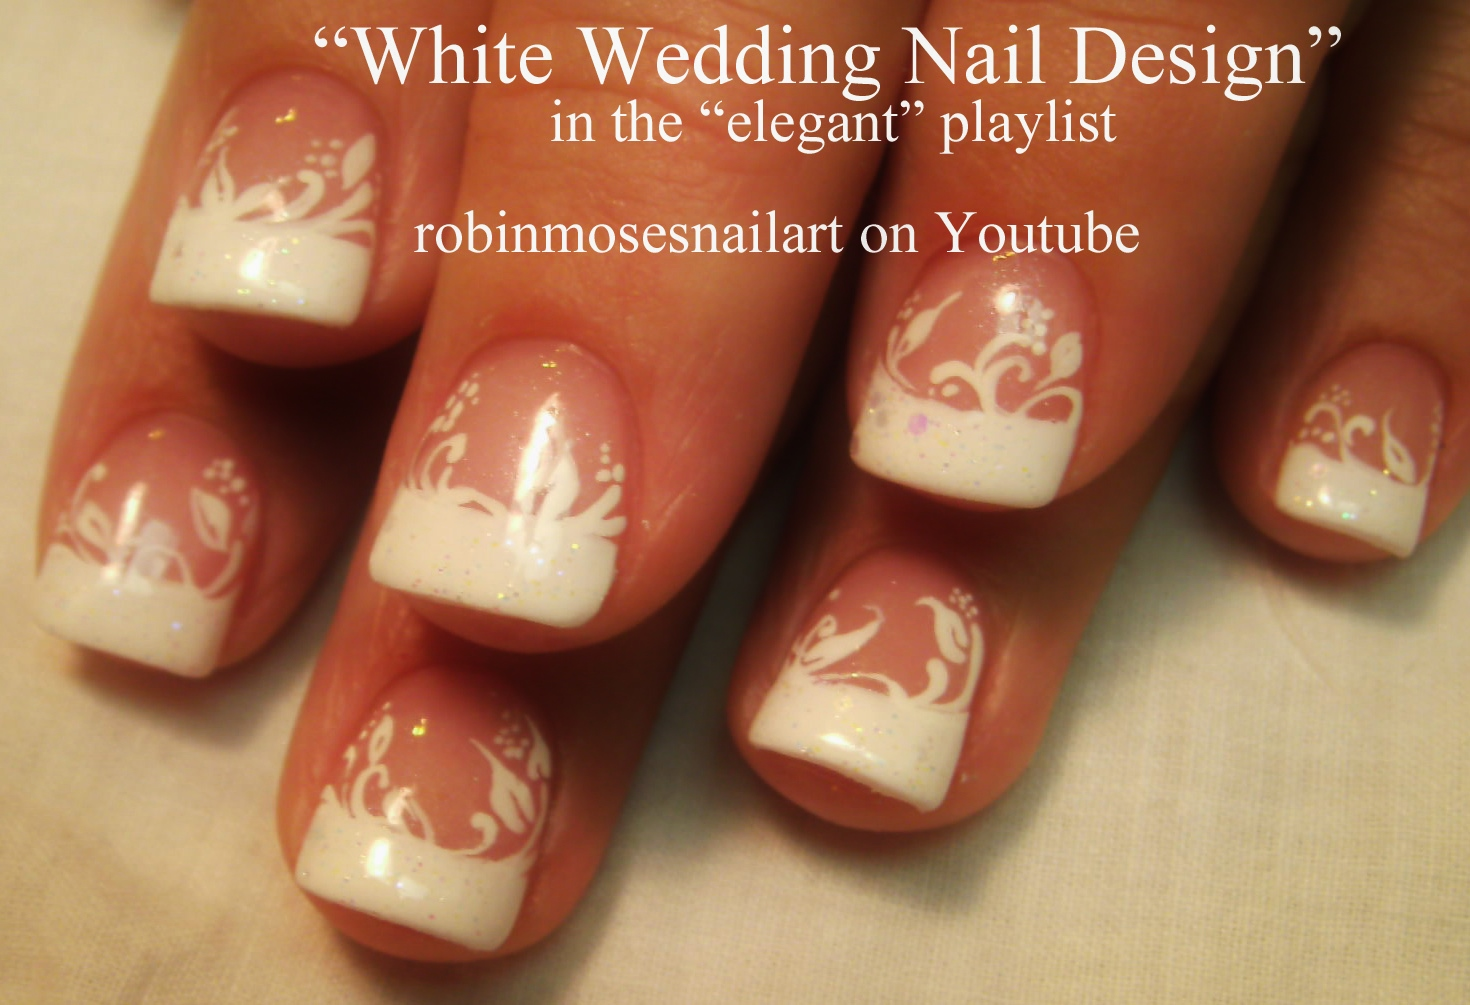 White Flower Nails Perfect Wedding DIY Ideas Cutest In The World Short Nail Designs Urban Art